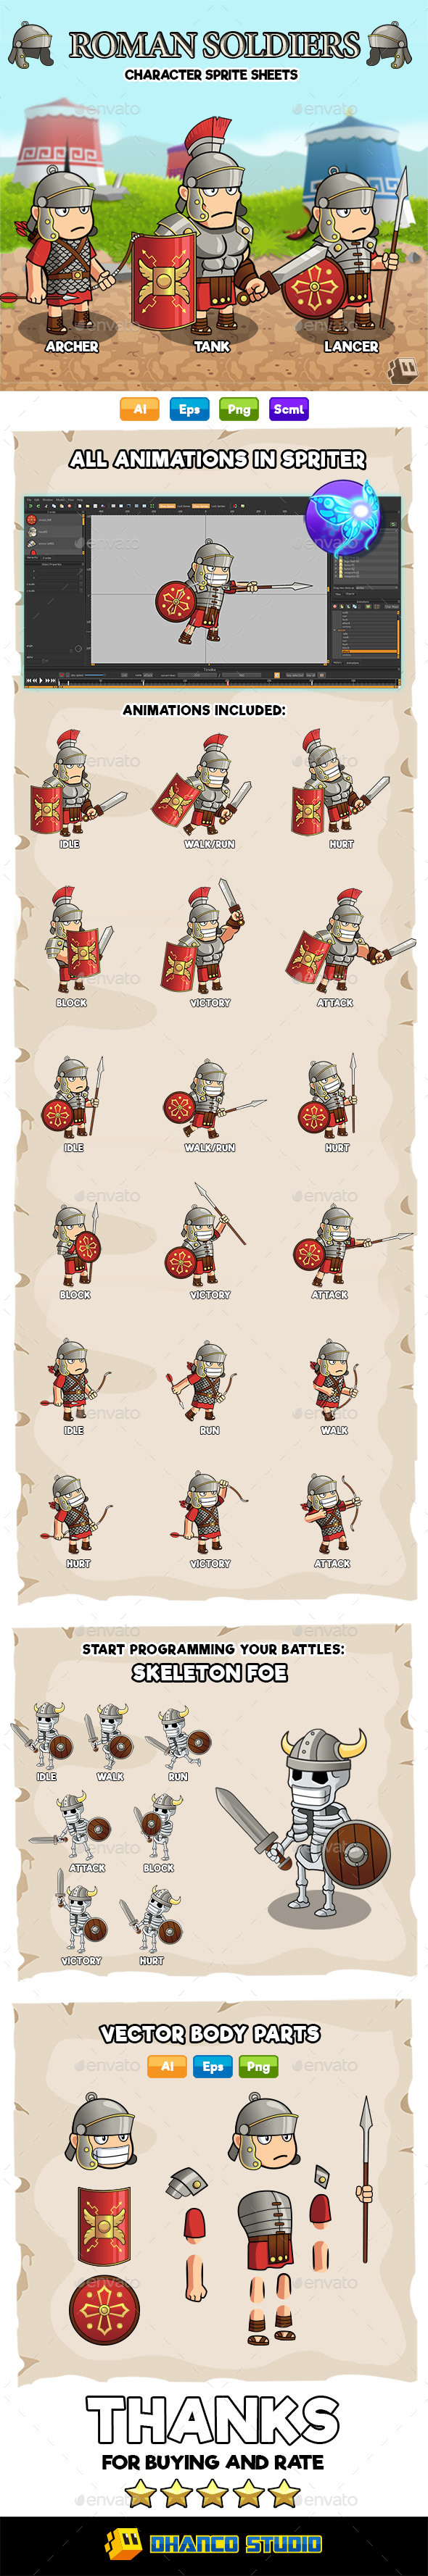 Roman Soldiers - Character Sprite Sheets - Sprites Game Assets